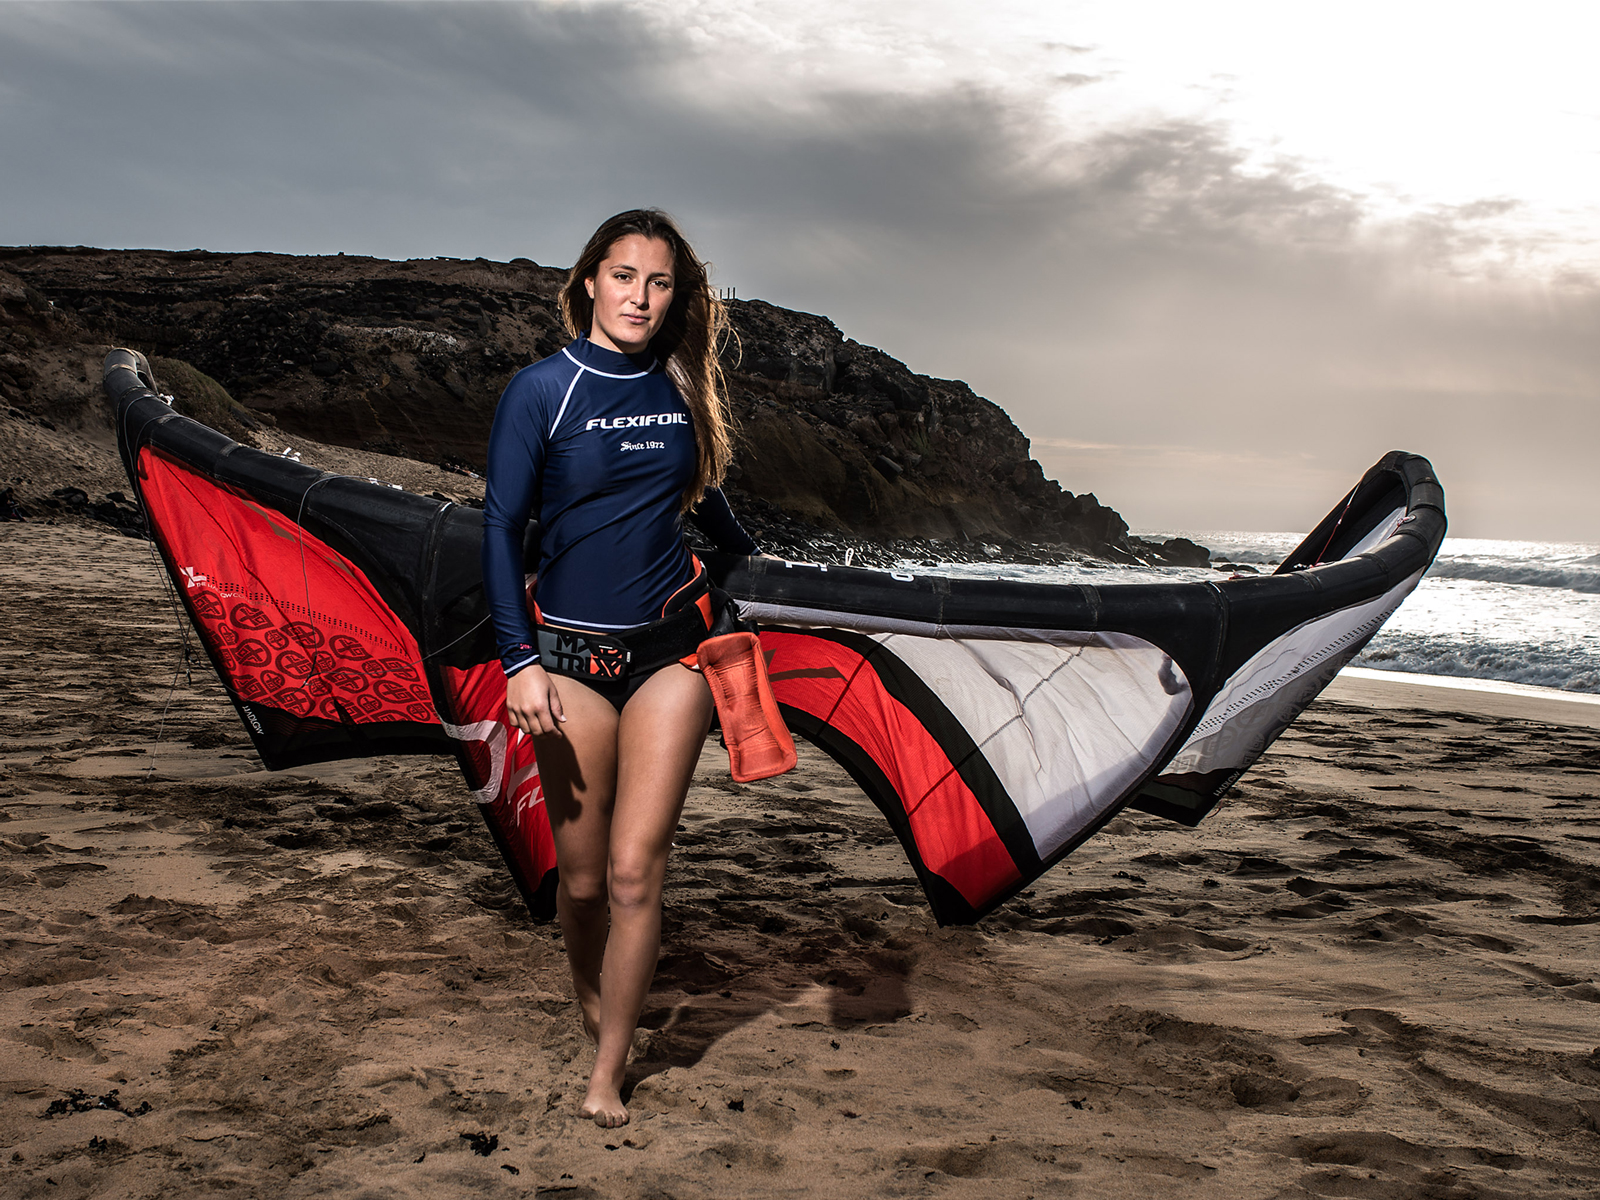 kitesurf wallpaper image - Julia Castro Christiansen and her Flexifoil kite - kitesurfer - in resolution: Standard 4:3 1600 X 1200